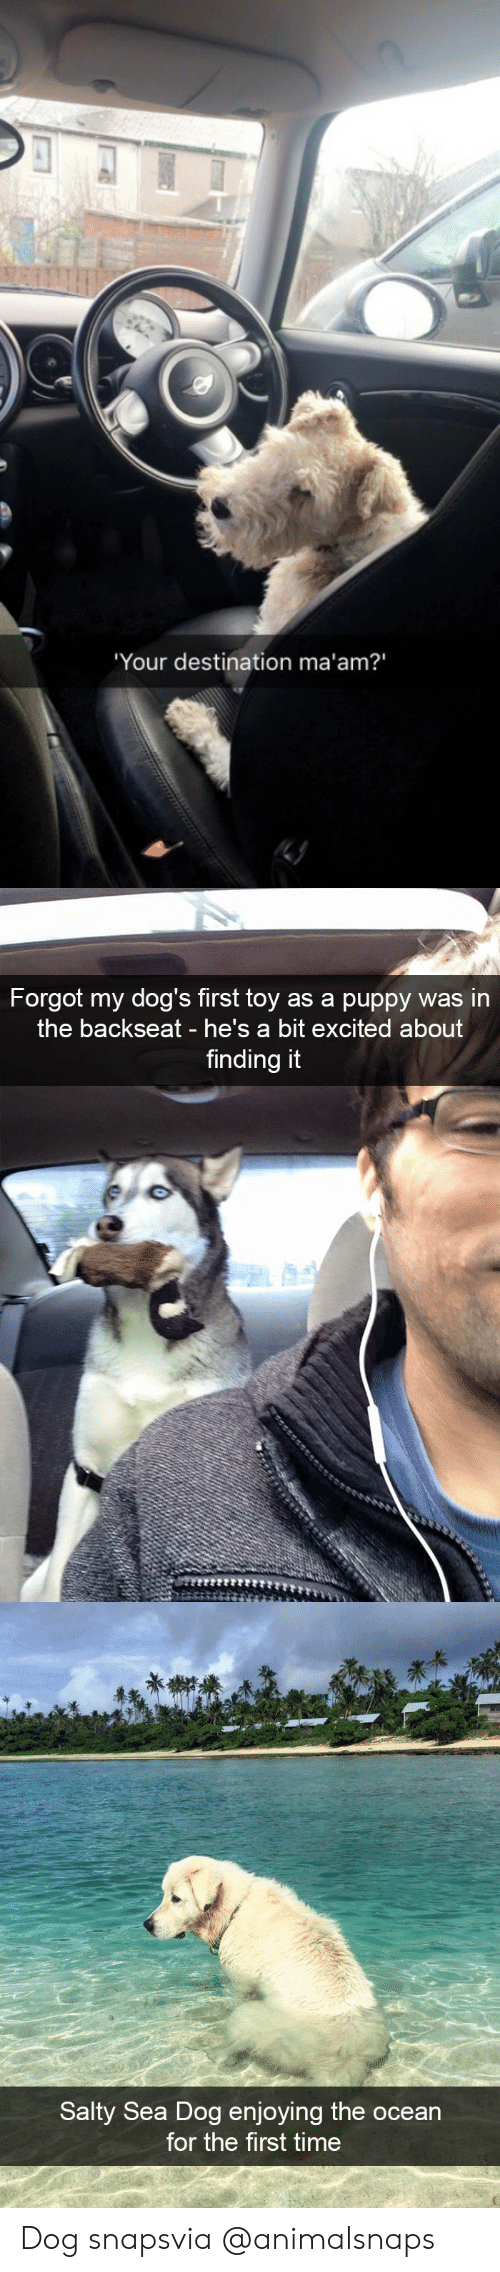 Dogs, Being Salty, and Target: Your destination ma'am?'   Forgot my dog's first toy as a puppy was in  the backseat he's a bit excited about  finding it   Salty Sea Dog enjoying the ocean  for the first time Dog snapsvia @animalsnaps